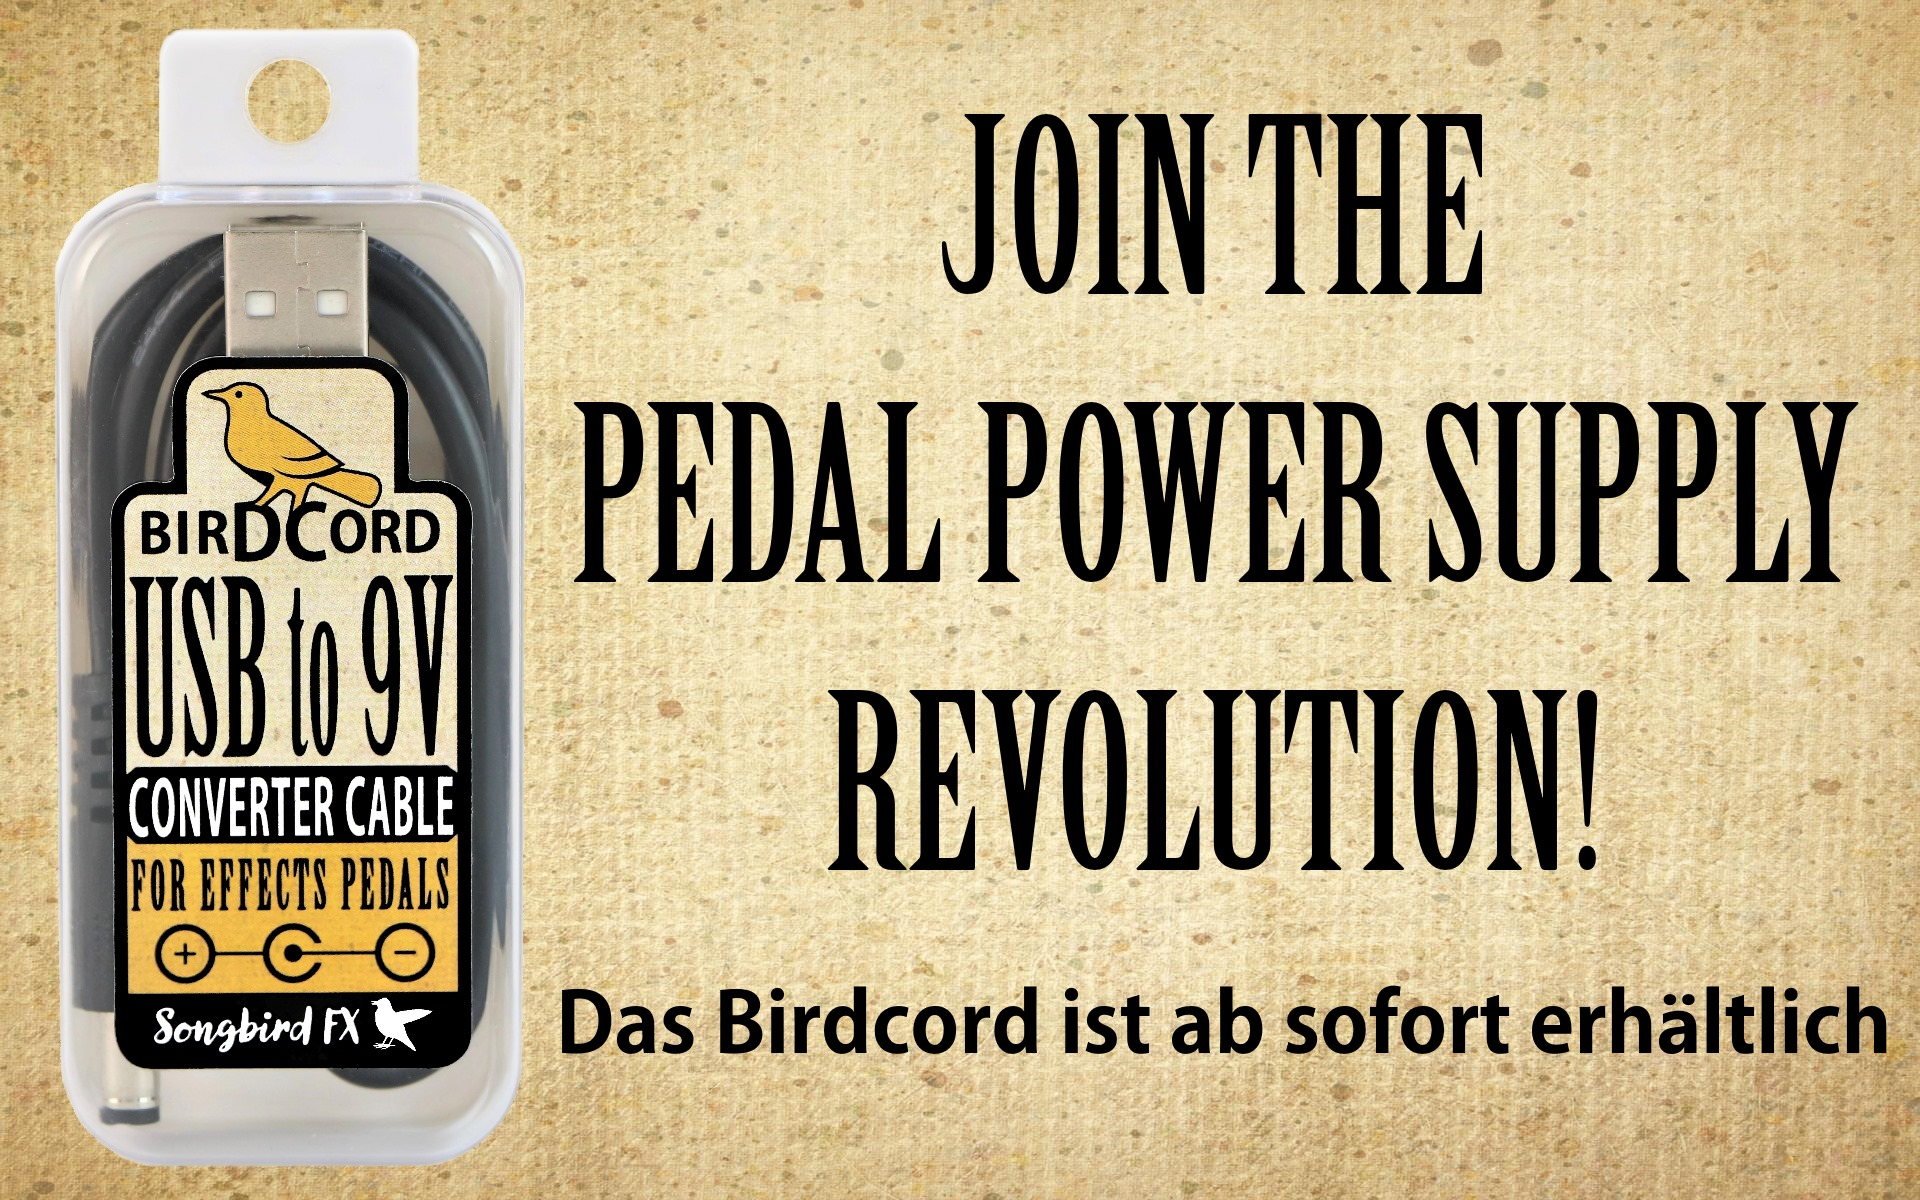 stromversorgung innovation pedal power supply revolution songbird fx birdcord kaufen ab sofort erhältlich